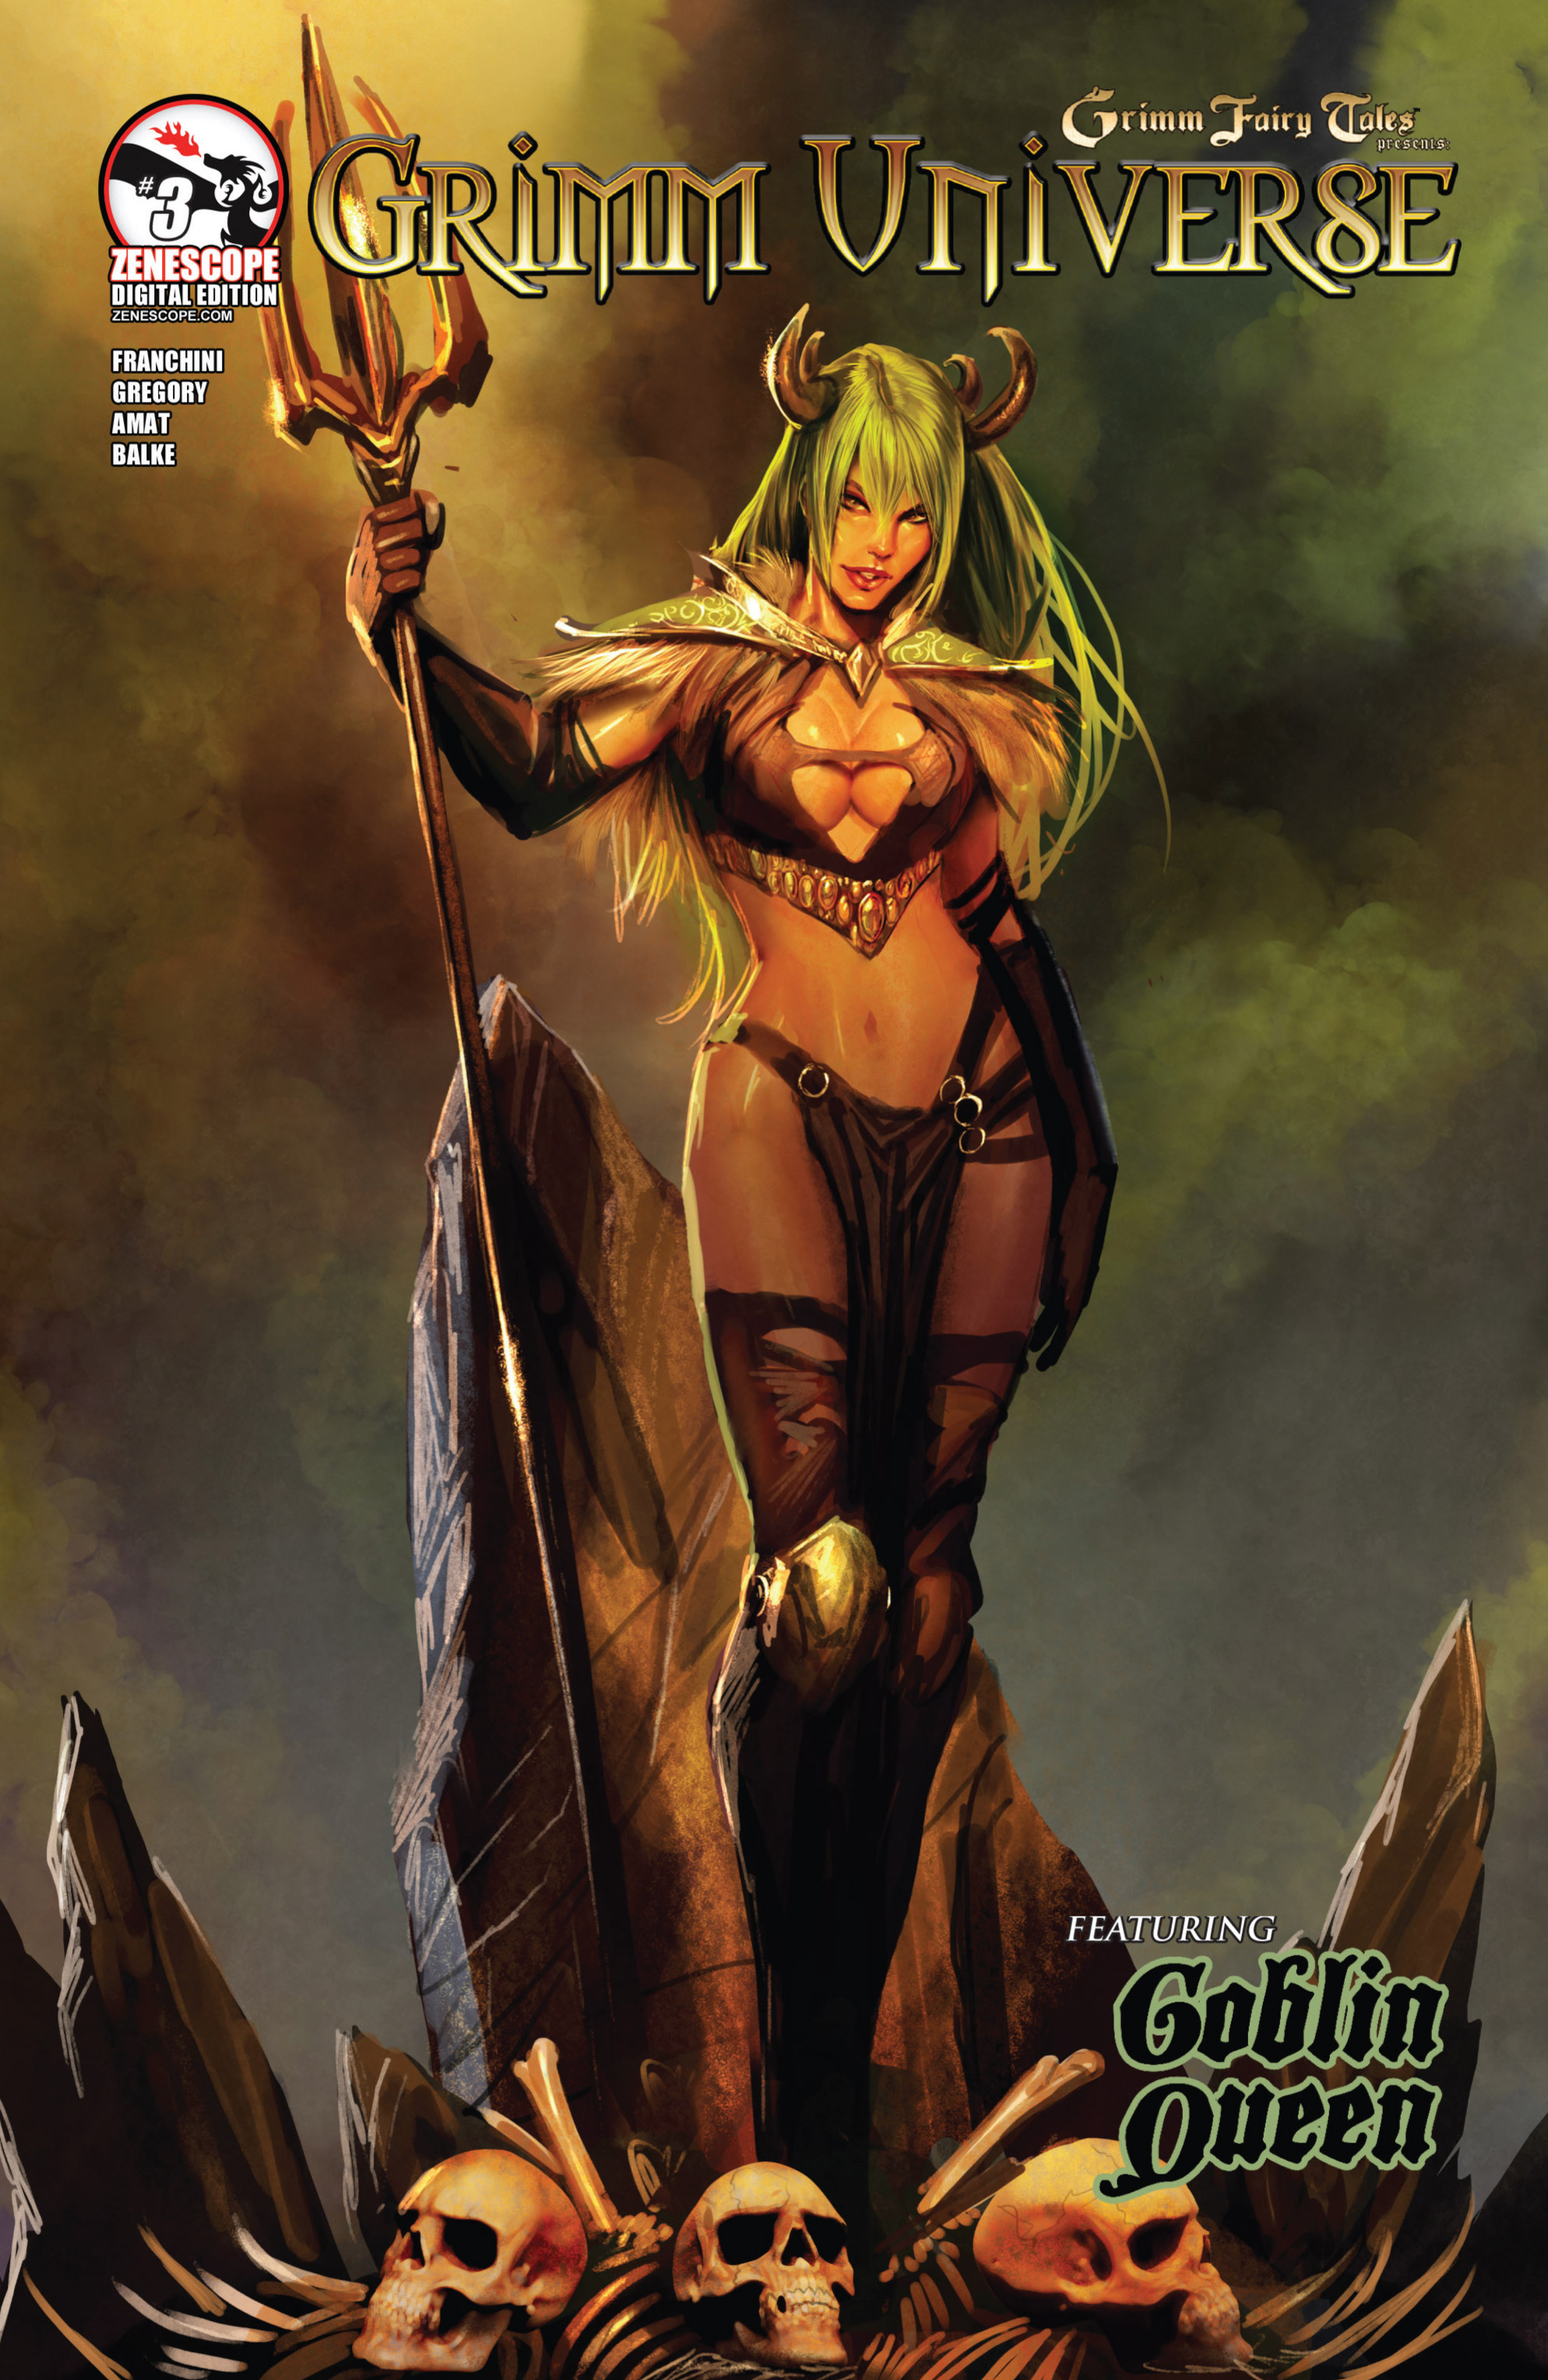 Read online Grimm Fairy Tales presents Grimm Universe comic -  Issue # TPB - 99